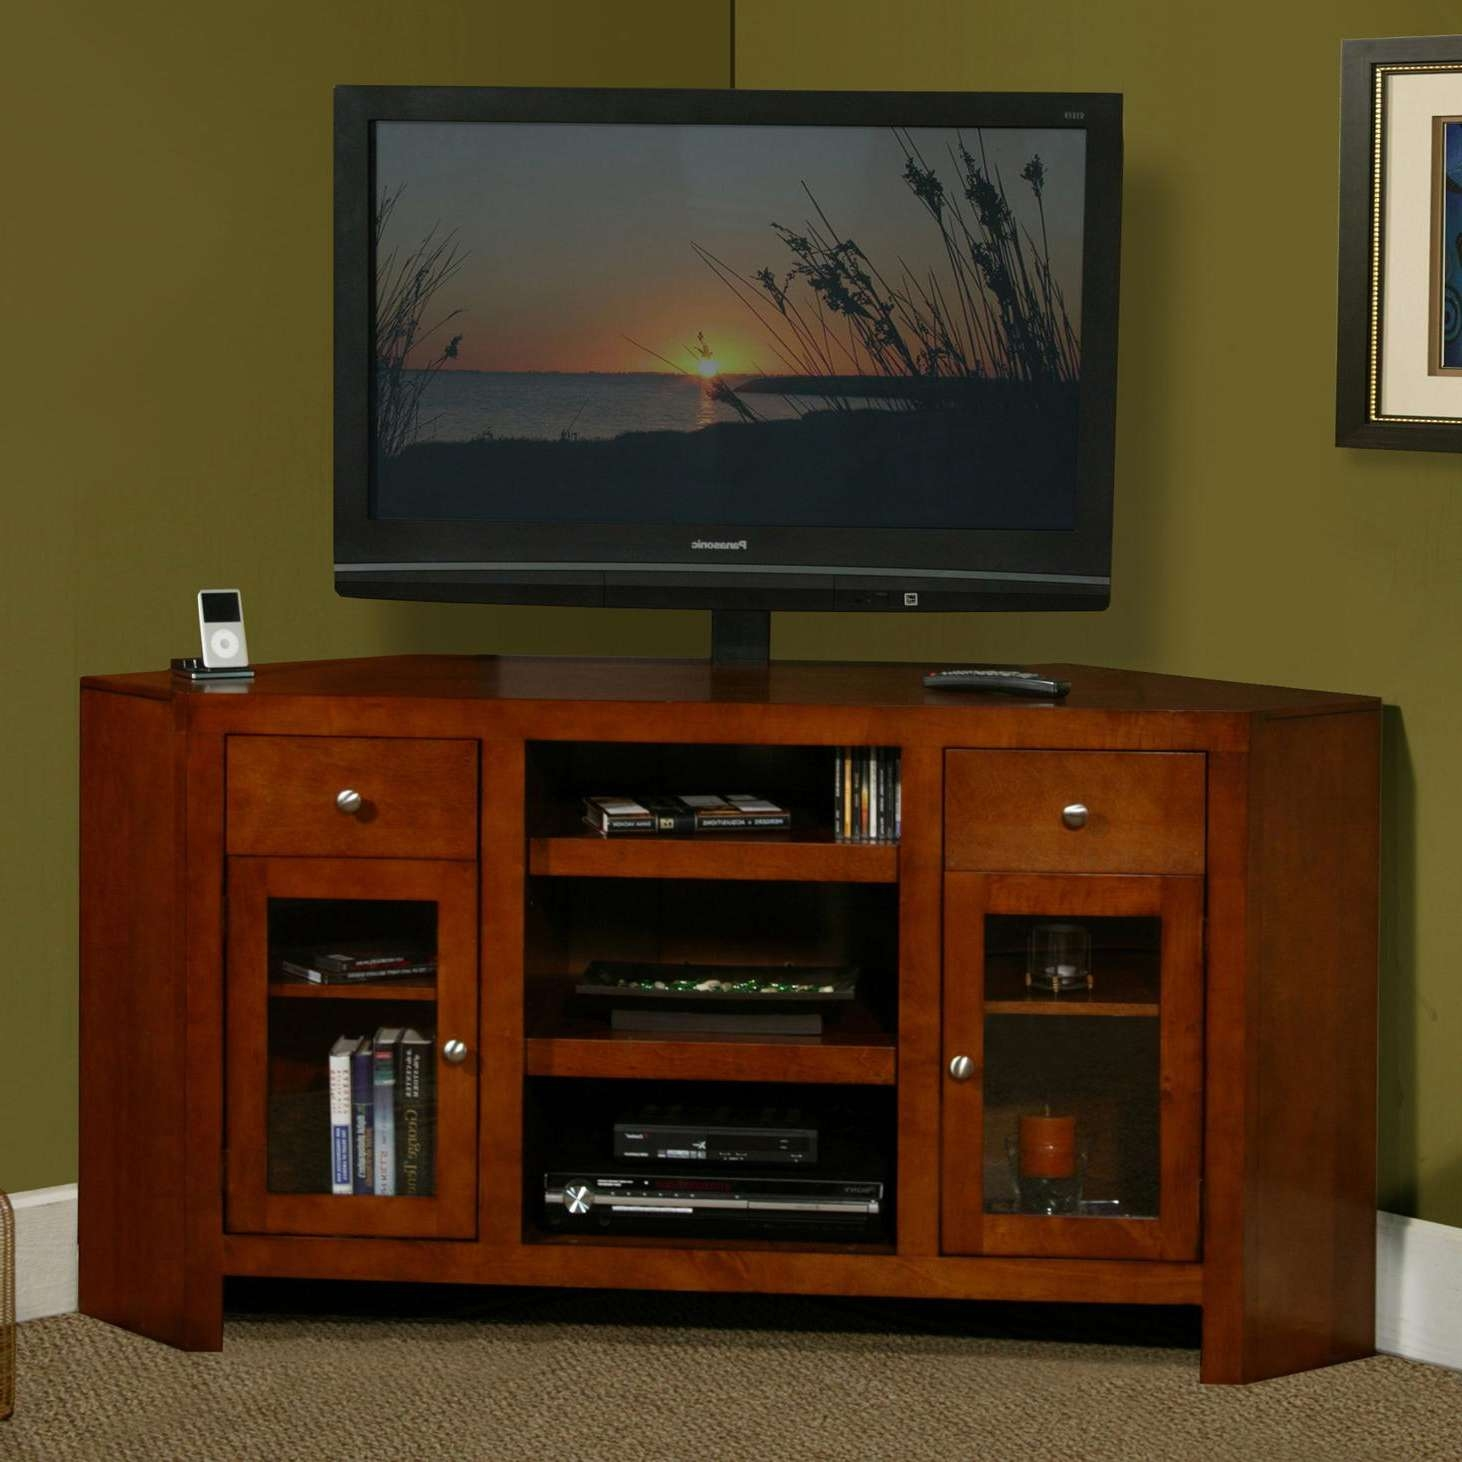 Oak Corner Tv Stand For 55 Inch Tvcorner Tv Stand 55 Inch Tags With Corner Tv Stands 40 Inch (View 7 of 20)